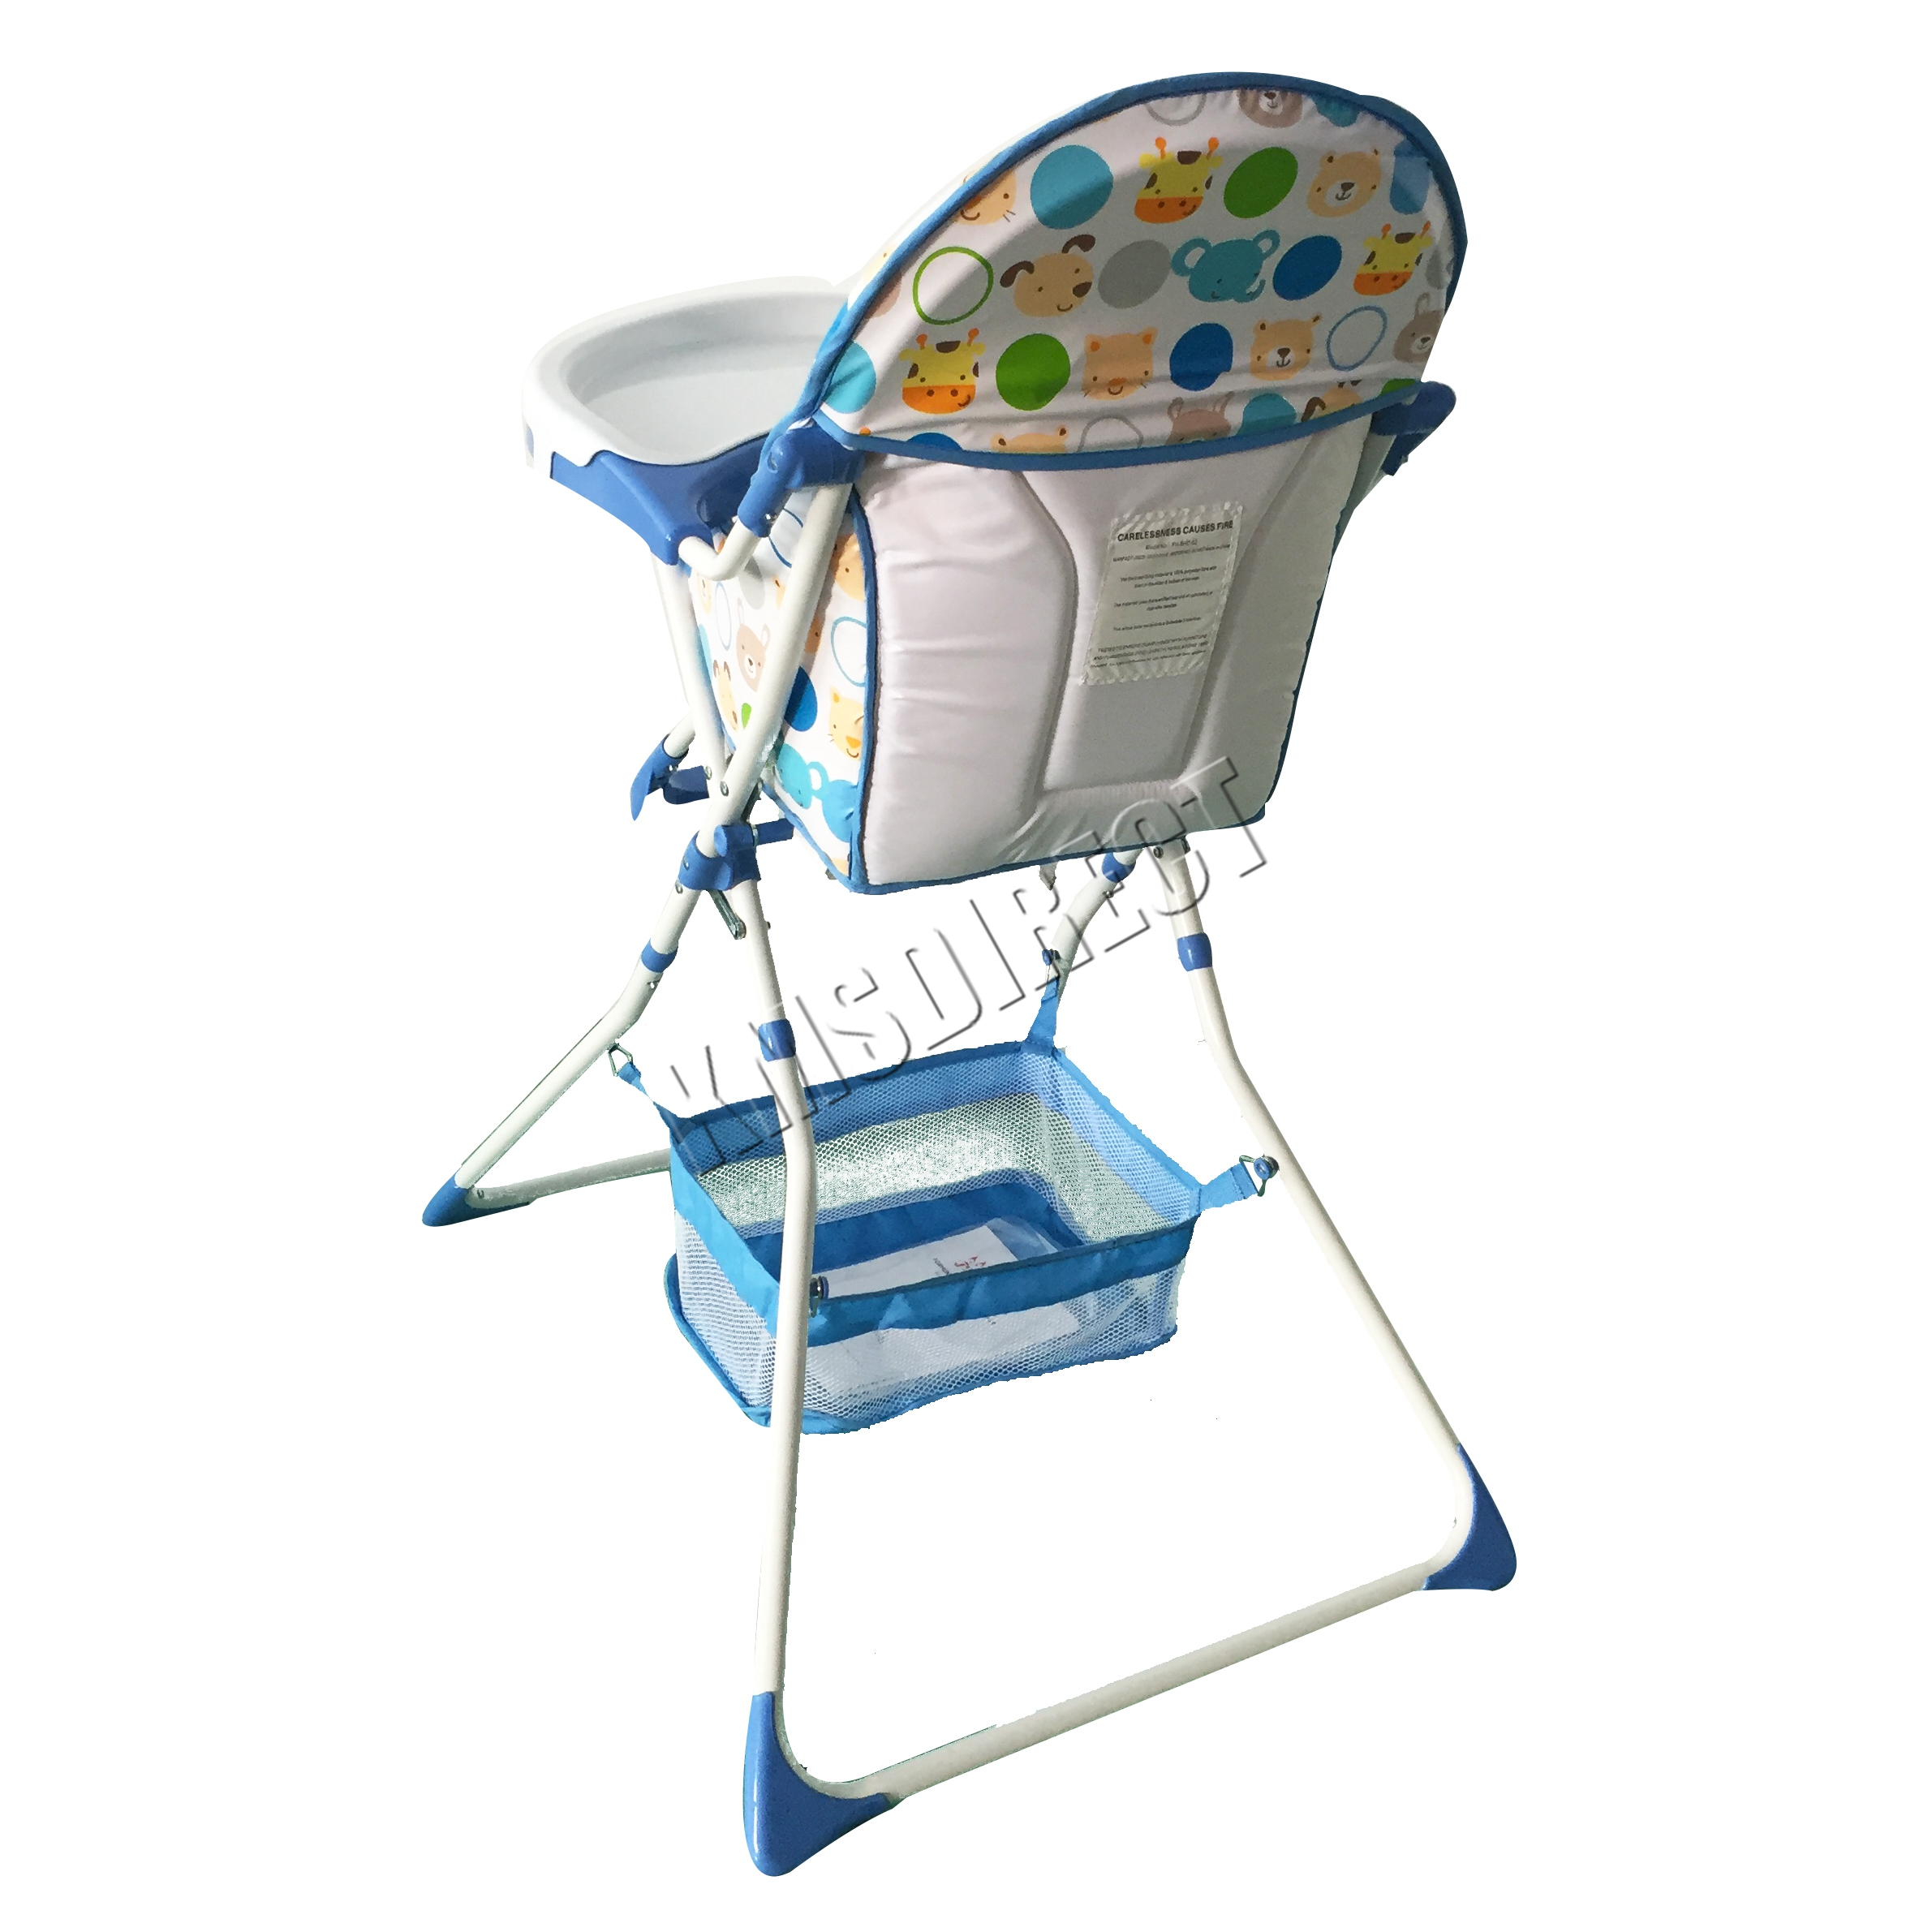 foxhunter portable baby high chair infant child folding feeding seat bib bhc02 ebay. Black Bedroom Furniture Sets. Home Design Ideas